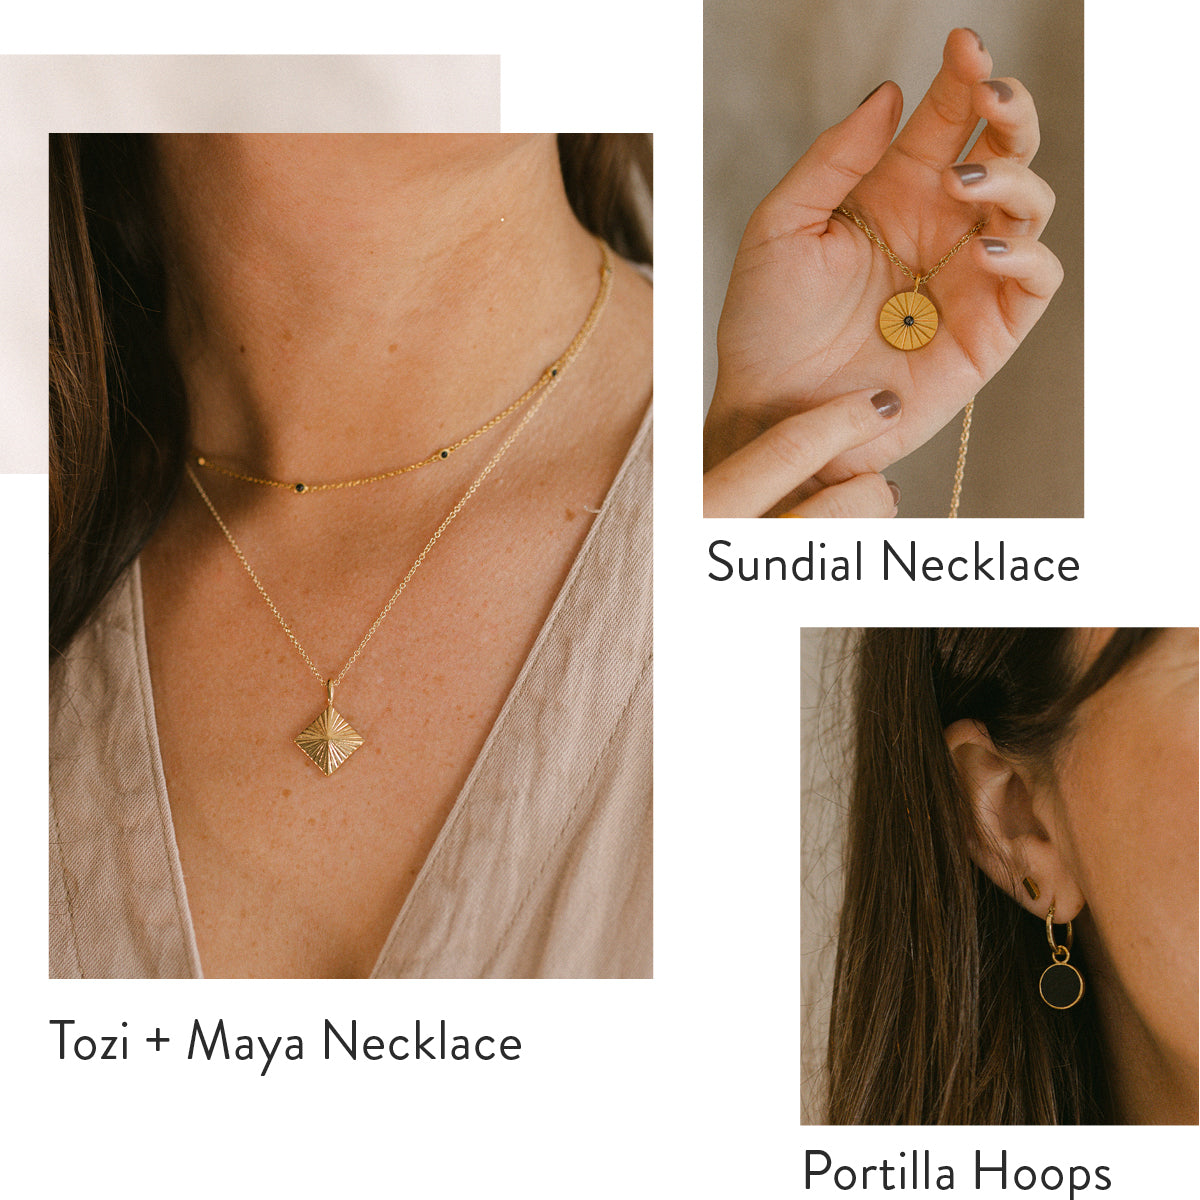 Sundial Necklace. Tozi and Maya Necklace. Portilla Hoops.